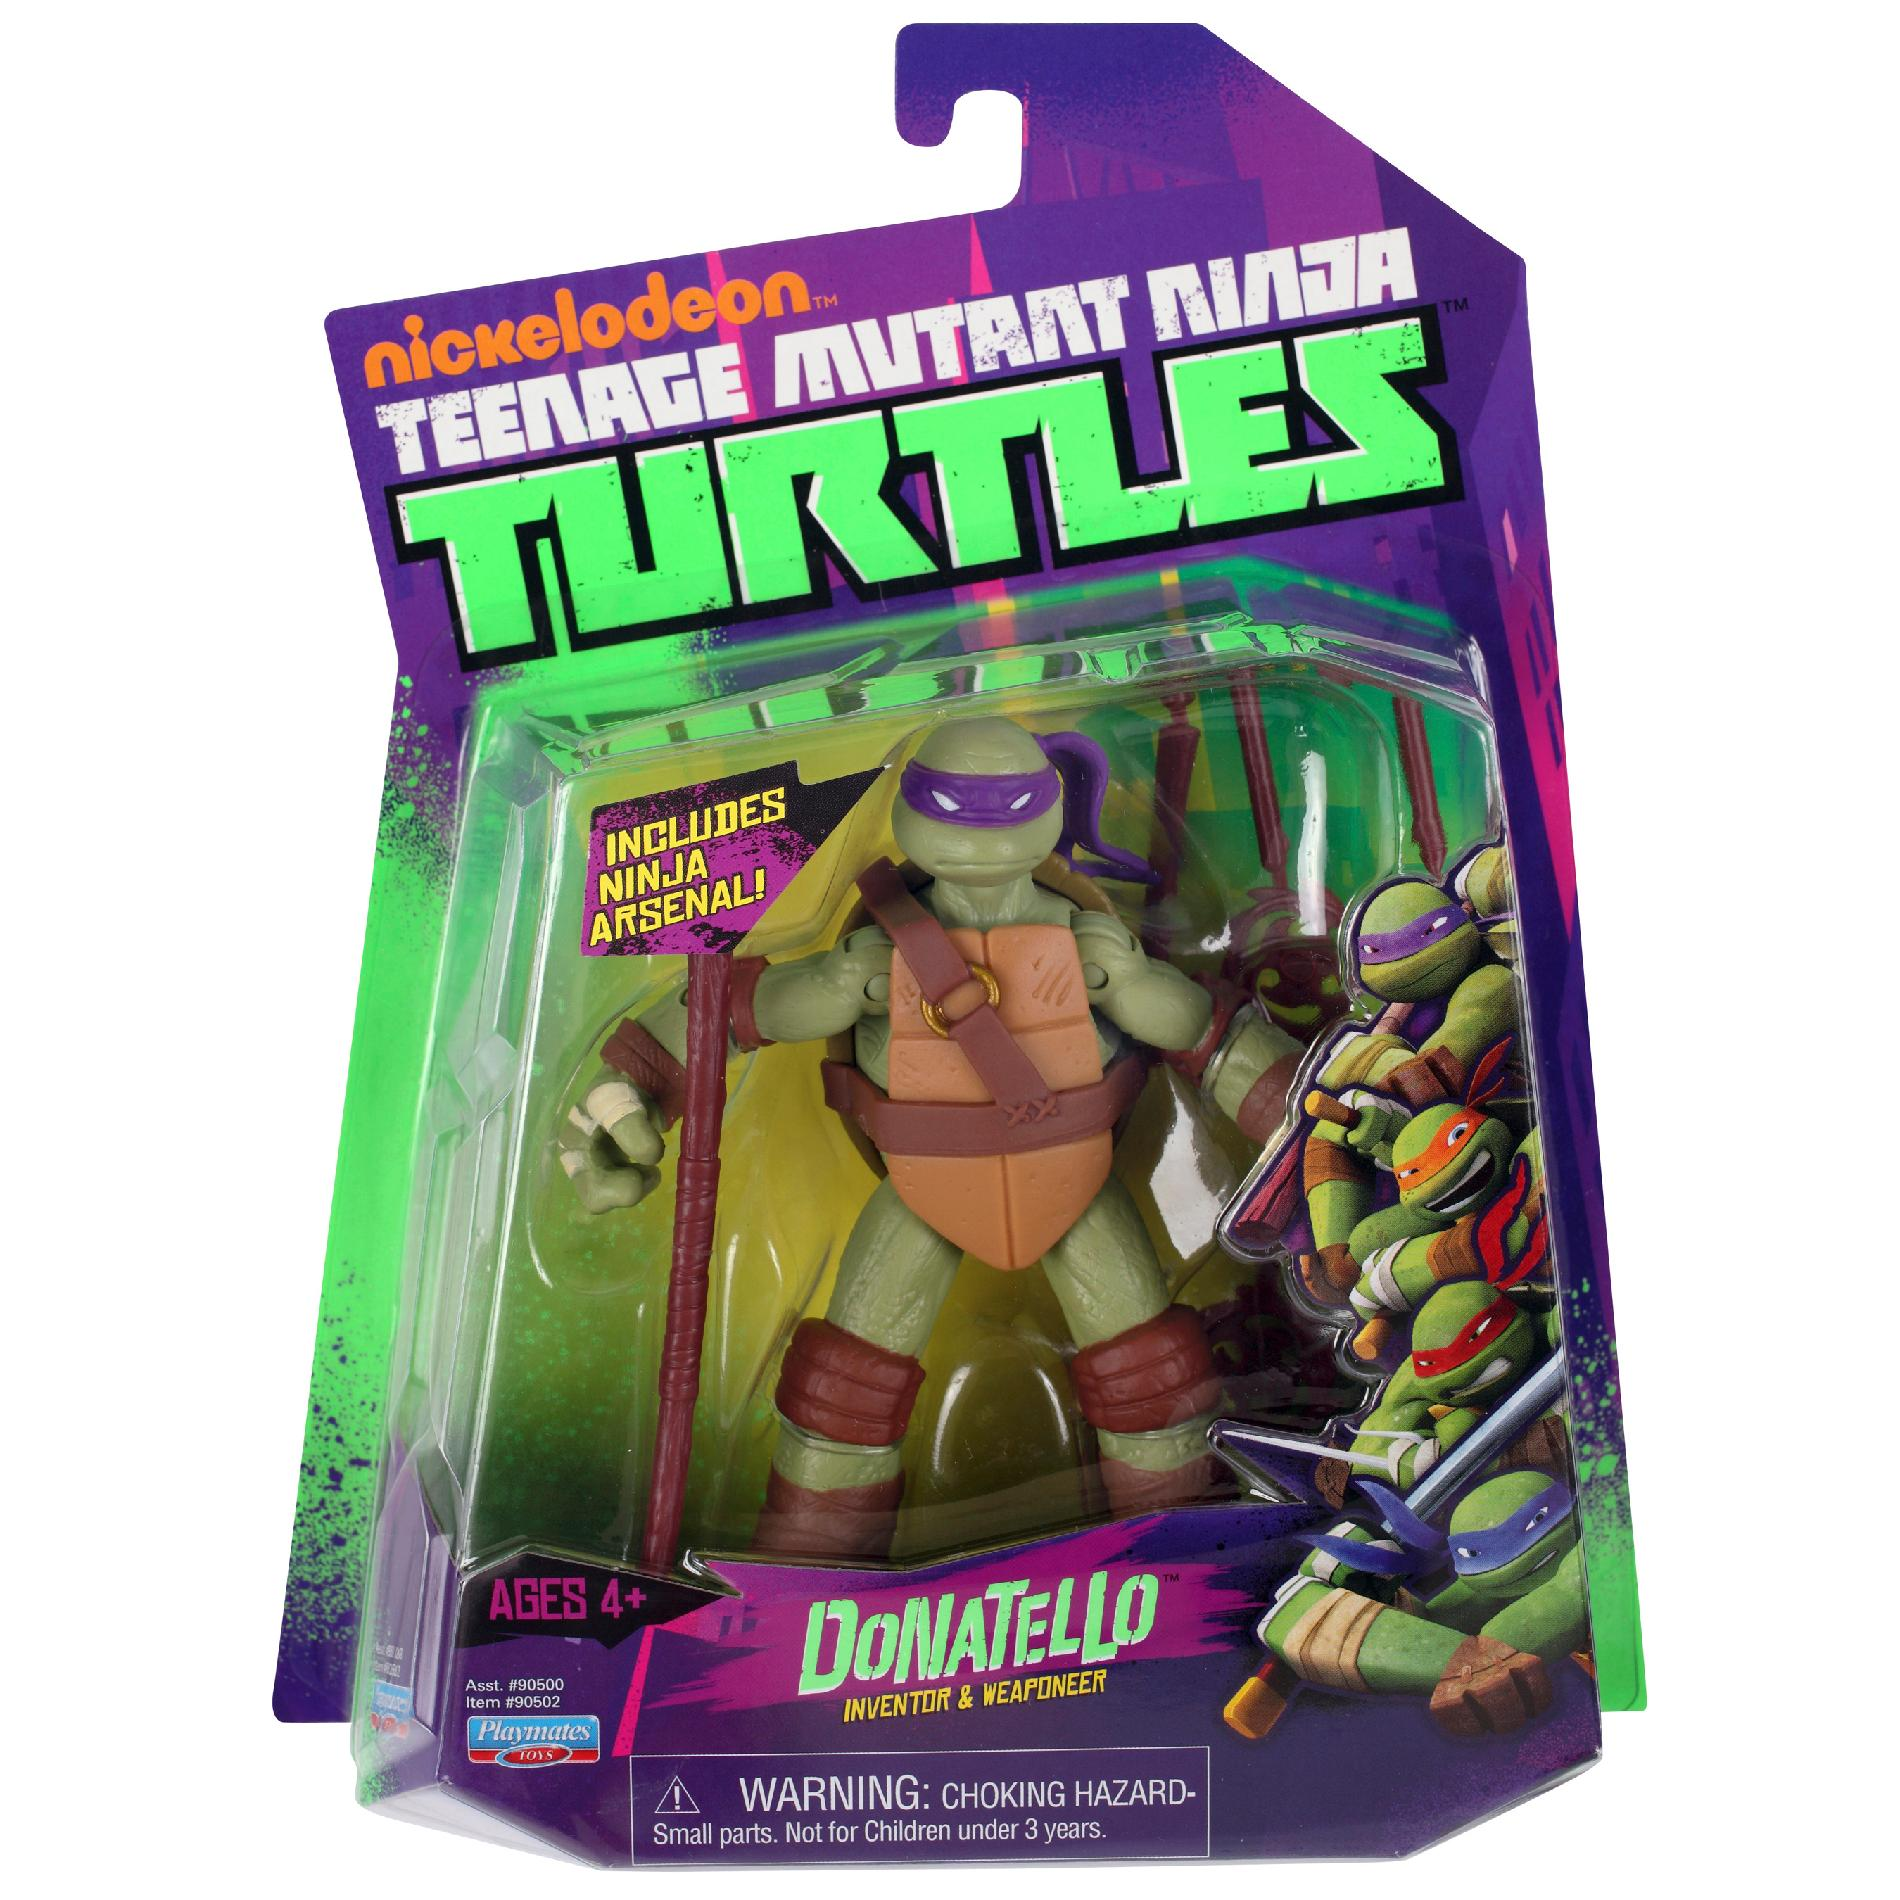 Teenage Mutant Ninja Turtles 2012 Neuralizer Toy : Donatello action figure tmntpedia fandom